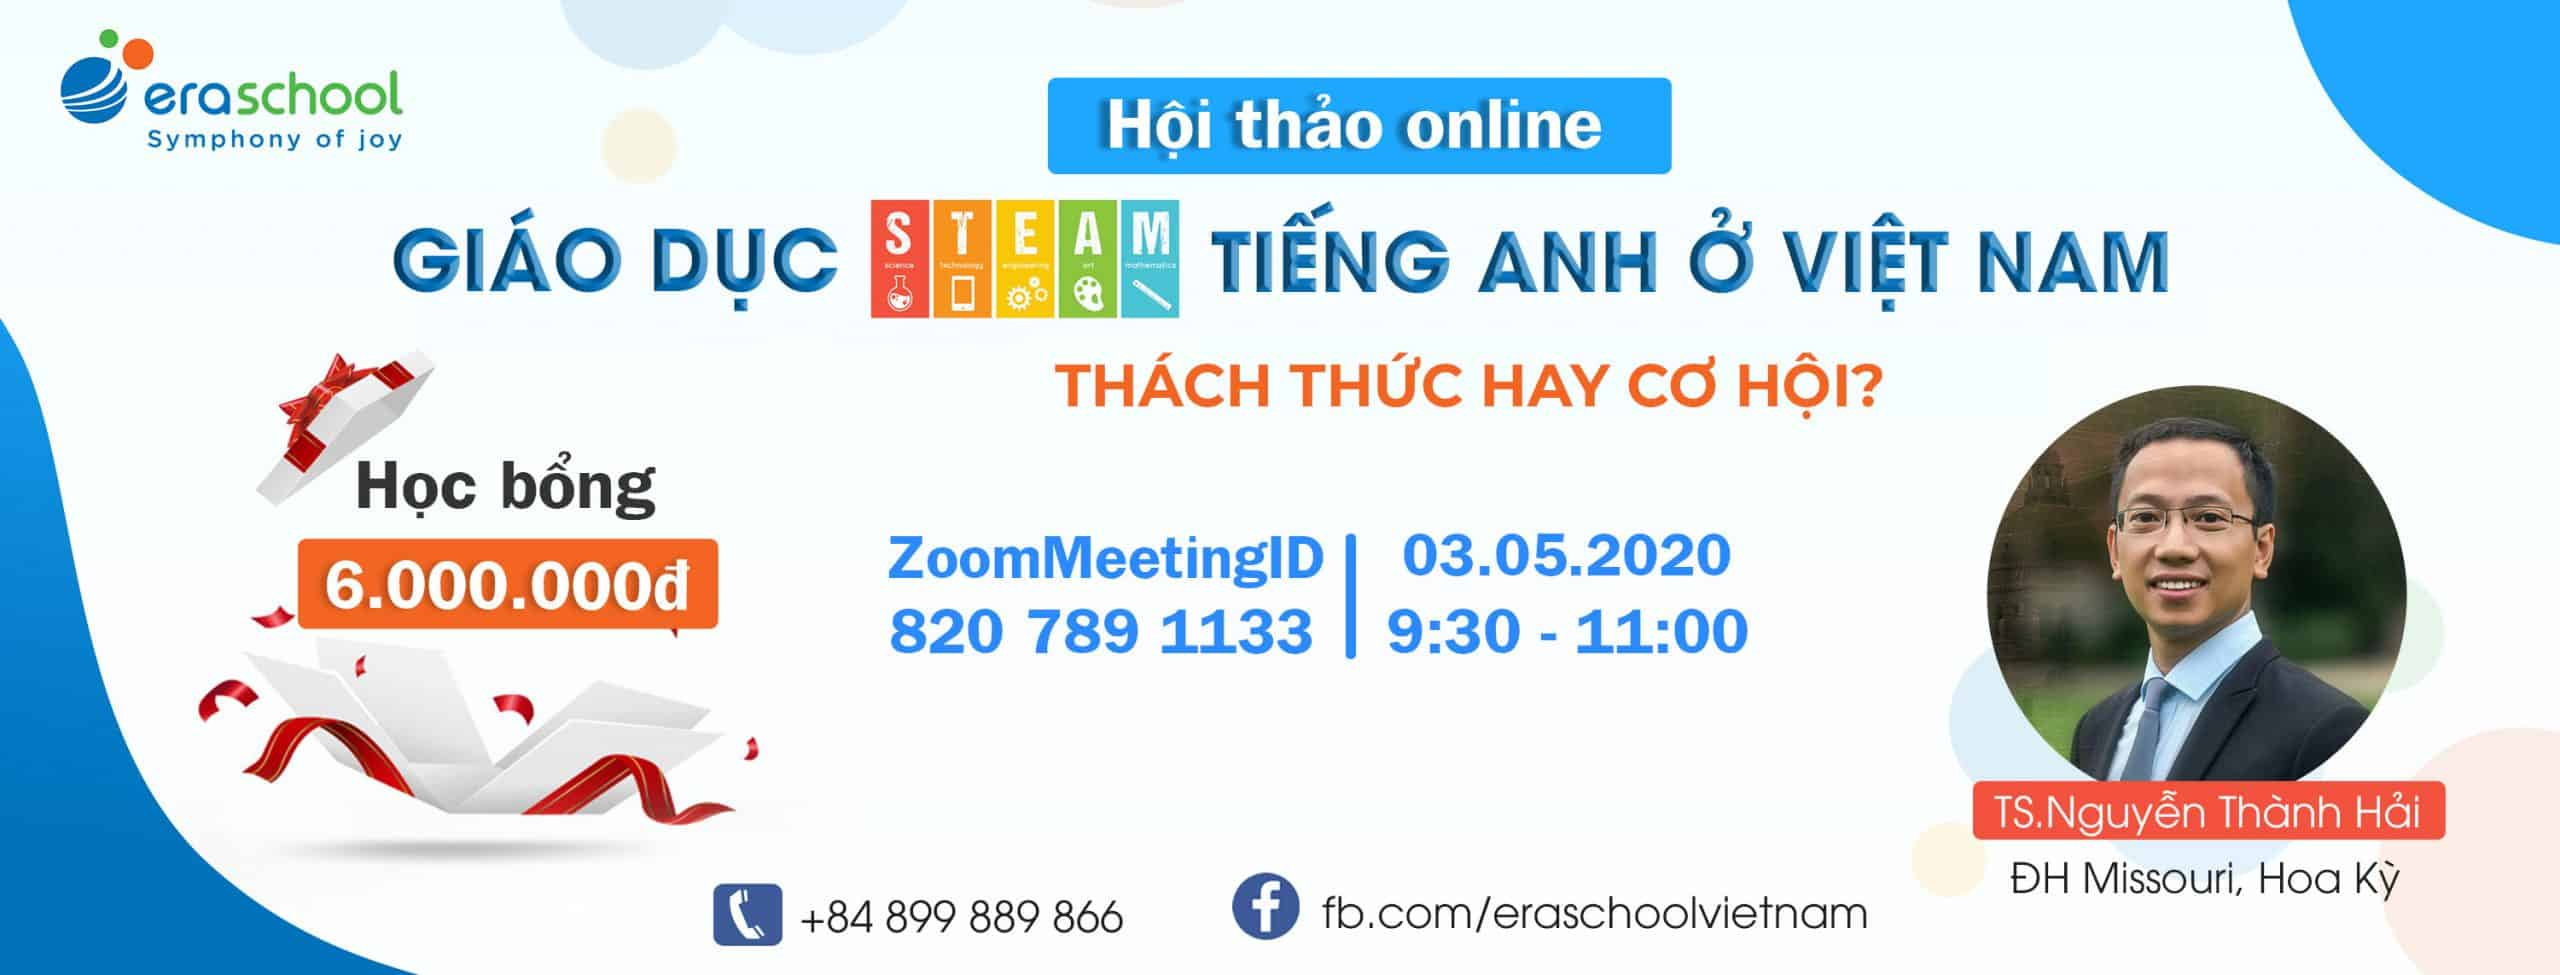 Cover Fanpage Hội Thảo Online Eraschool